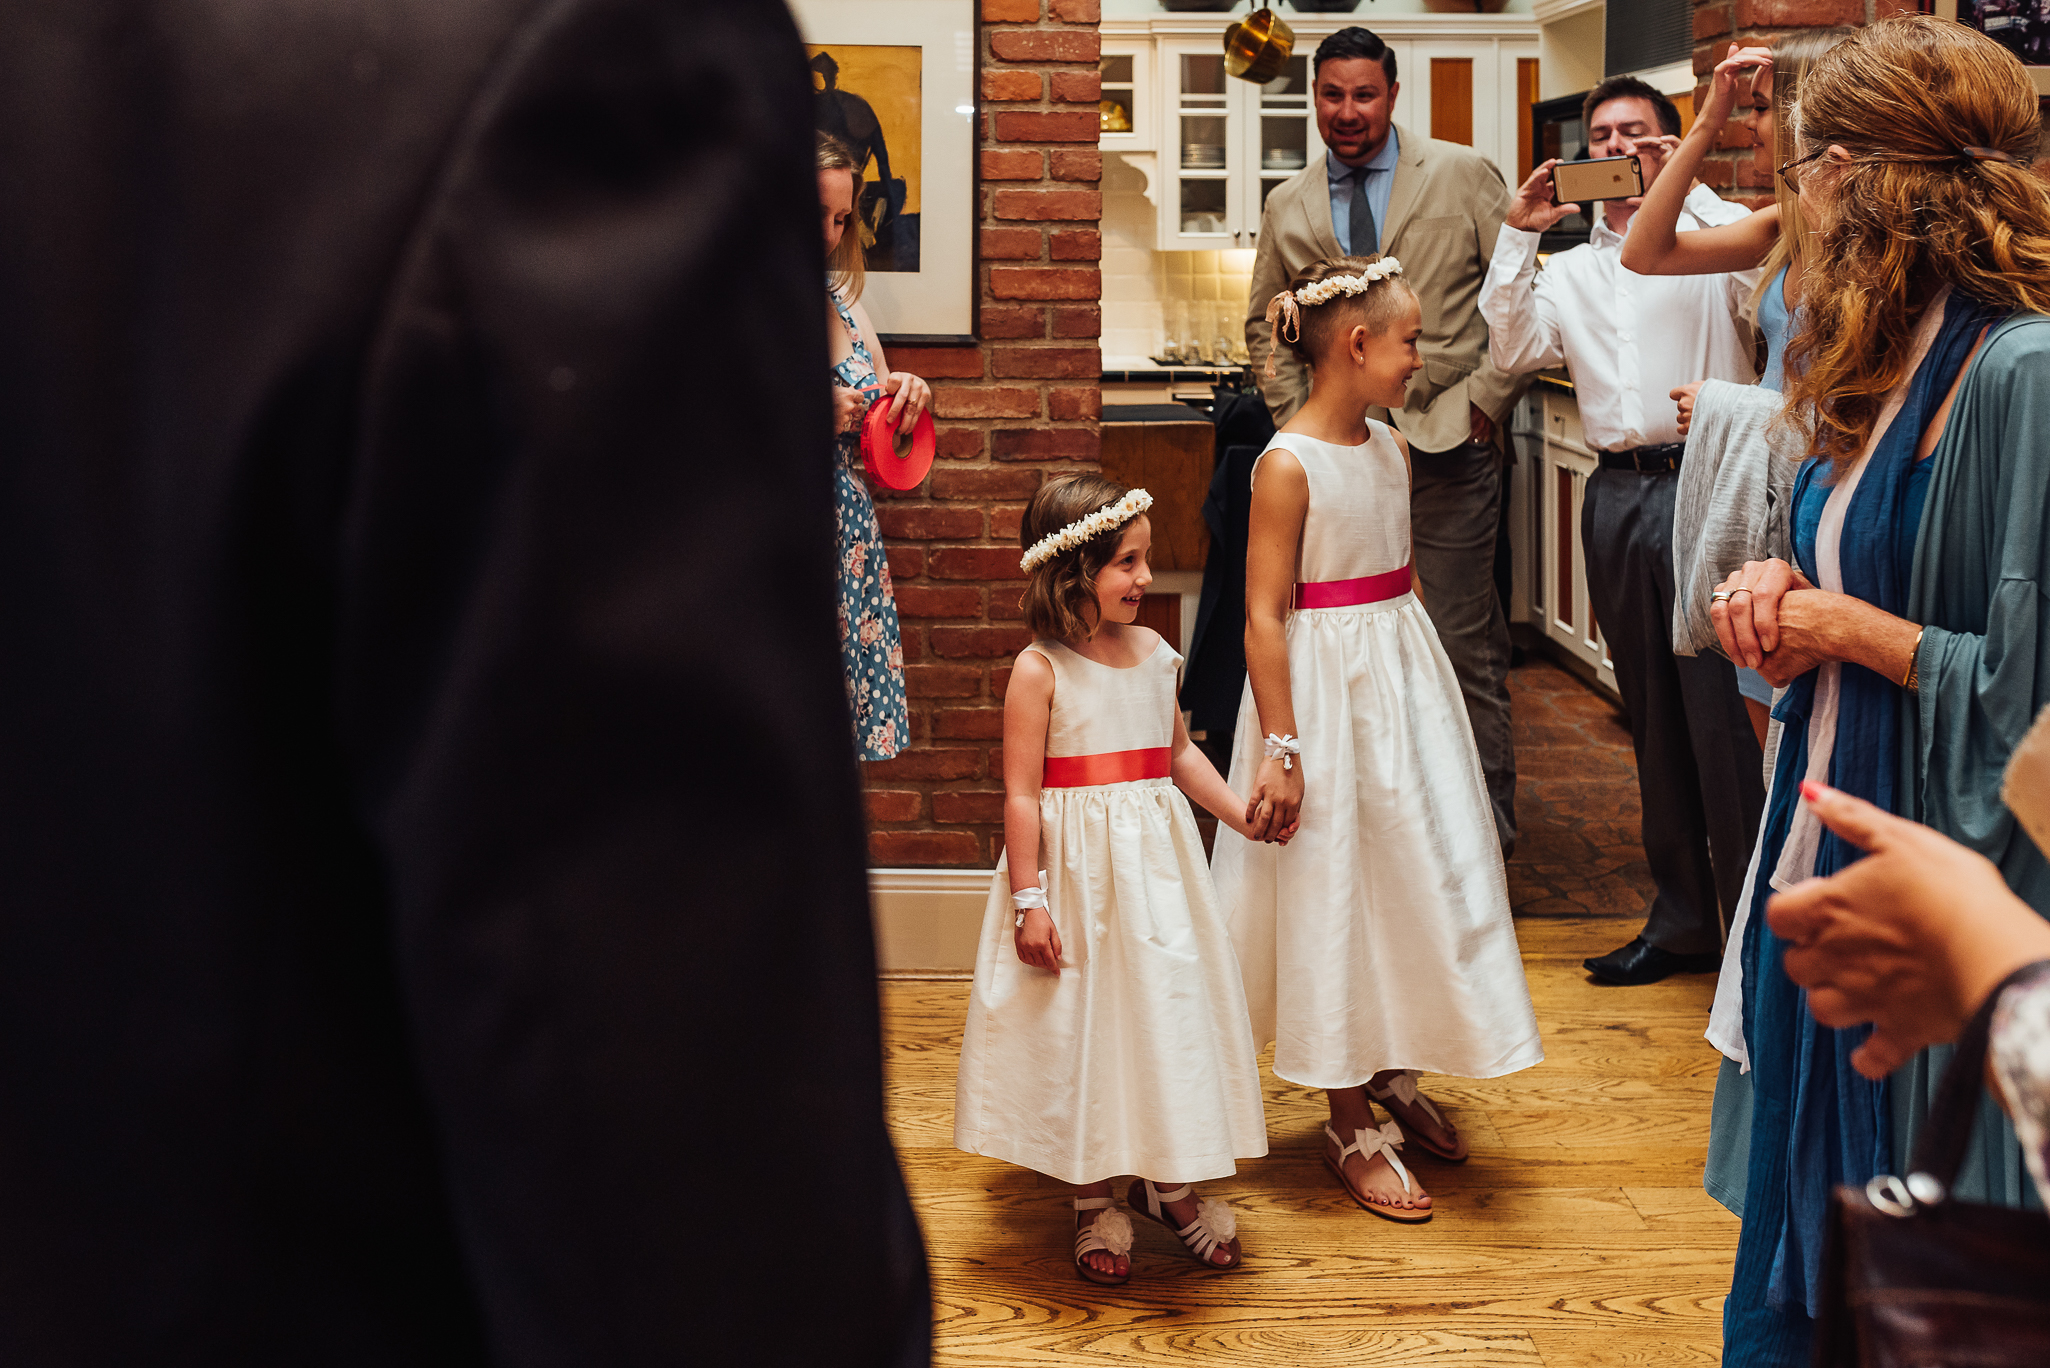 Lily_and_Lane_Childrens_Photographer_Victoria_BC-11.jpg